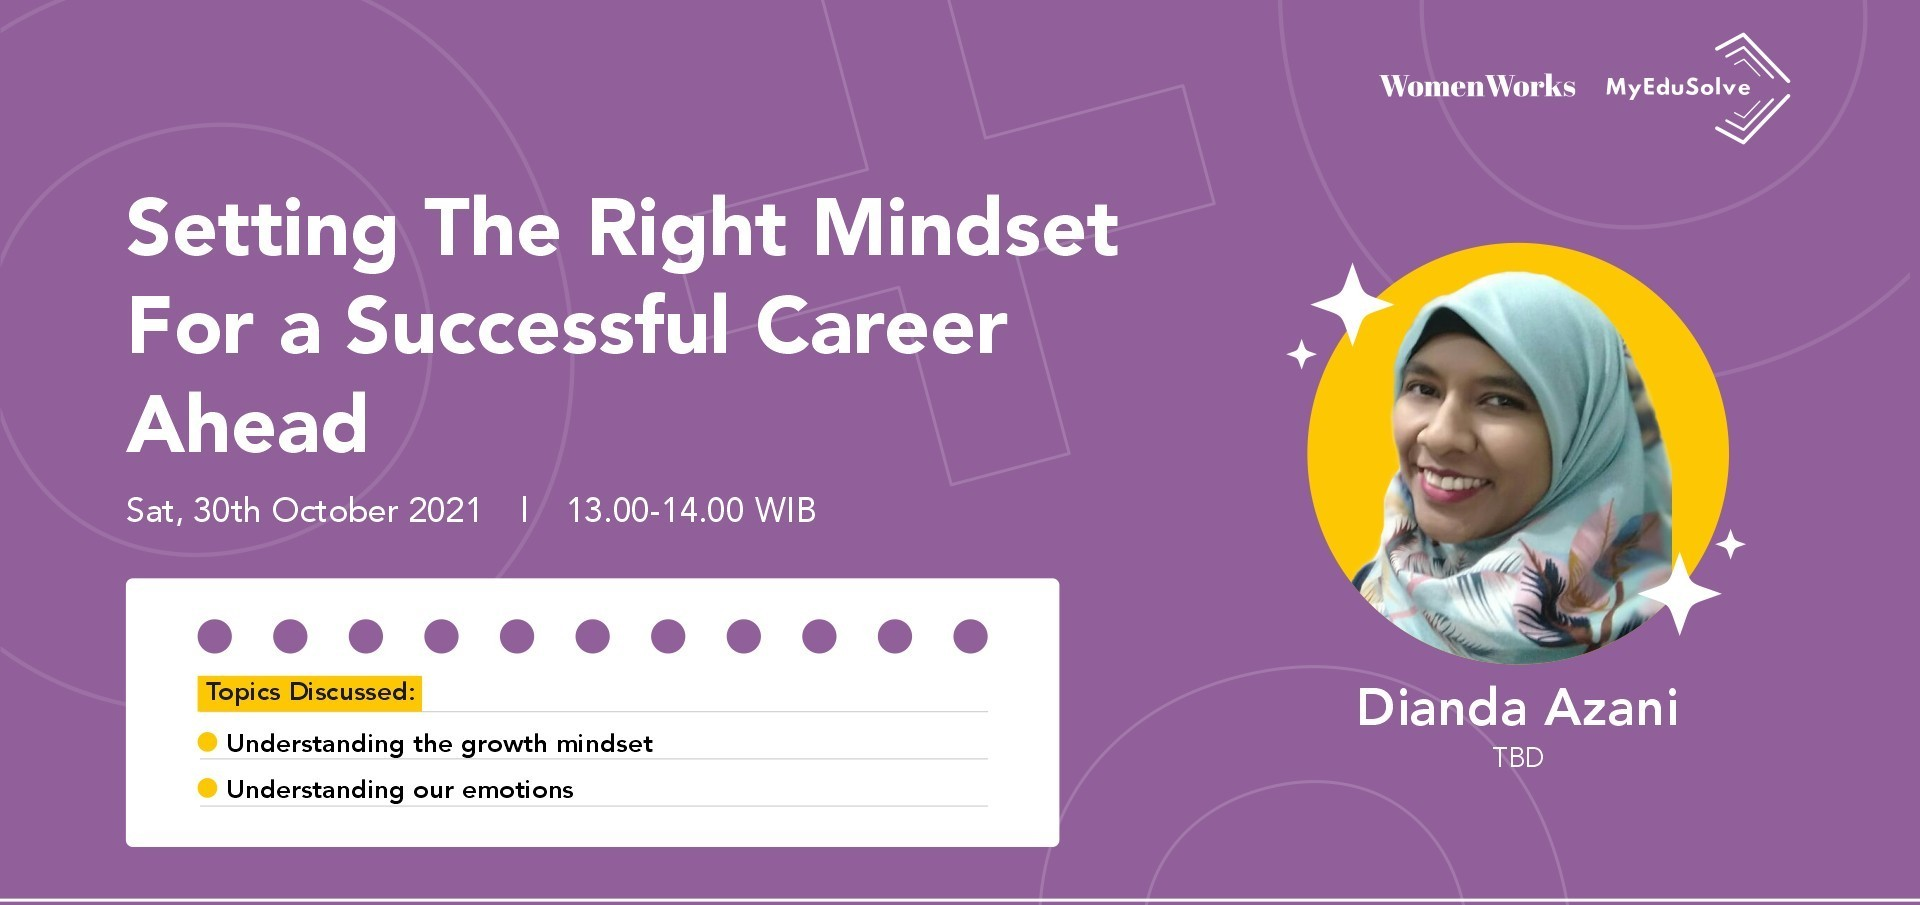 Setting The Right Mindset For a Successful Career Ahead